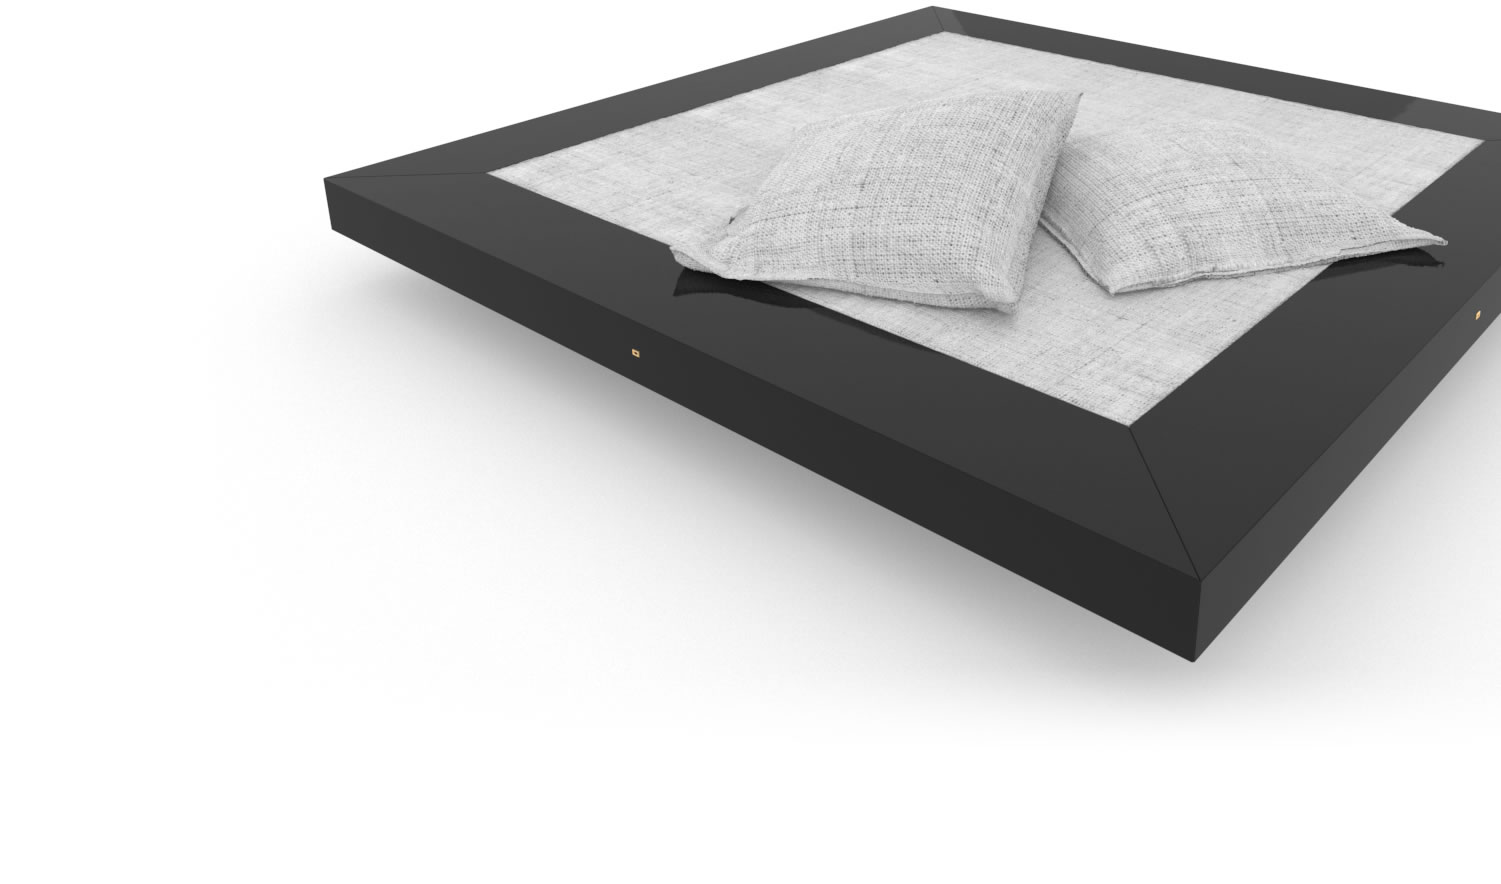 FELIX SCHWAKE BED II High Gloss Black Lacquer Mirror polished Piano Finish Tailor Bed Floating